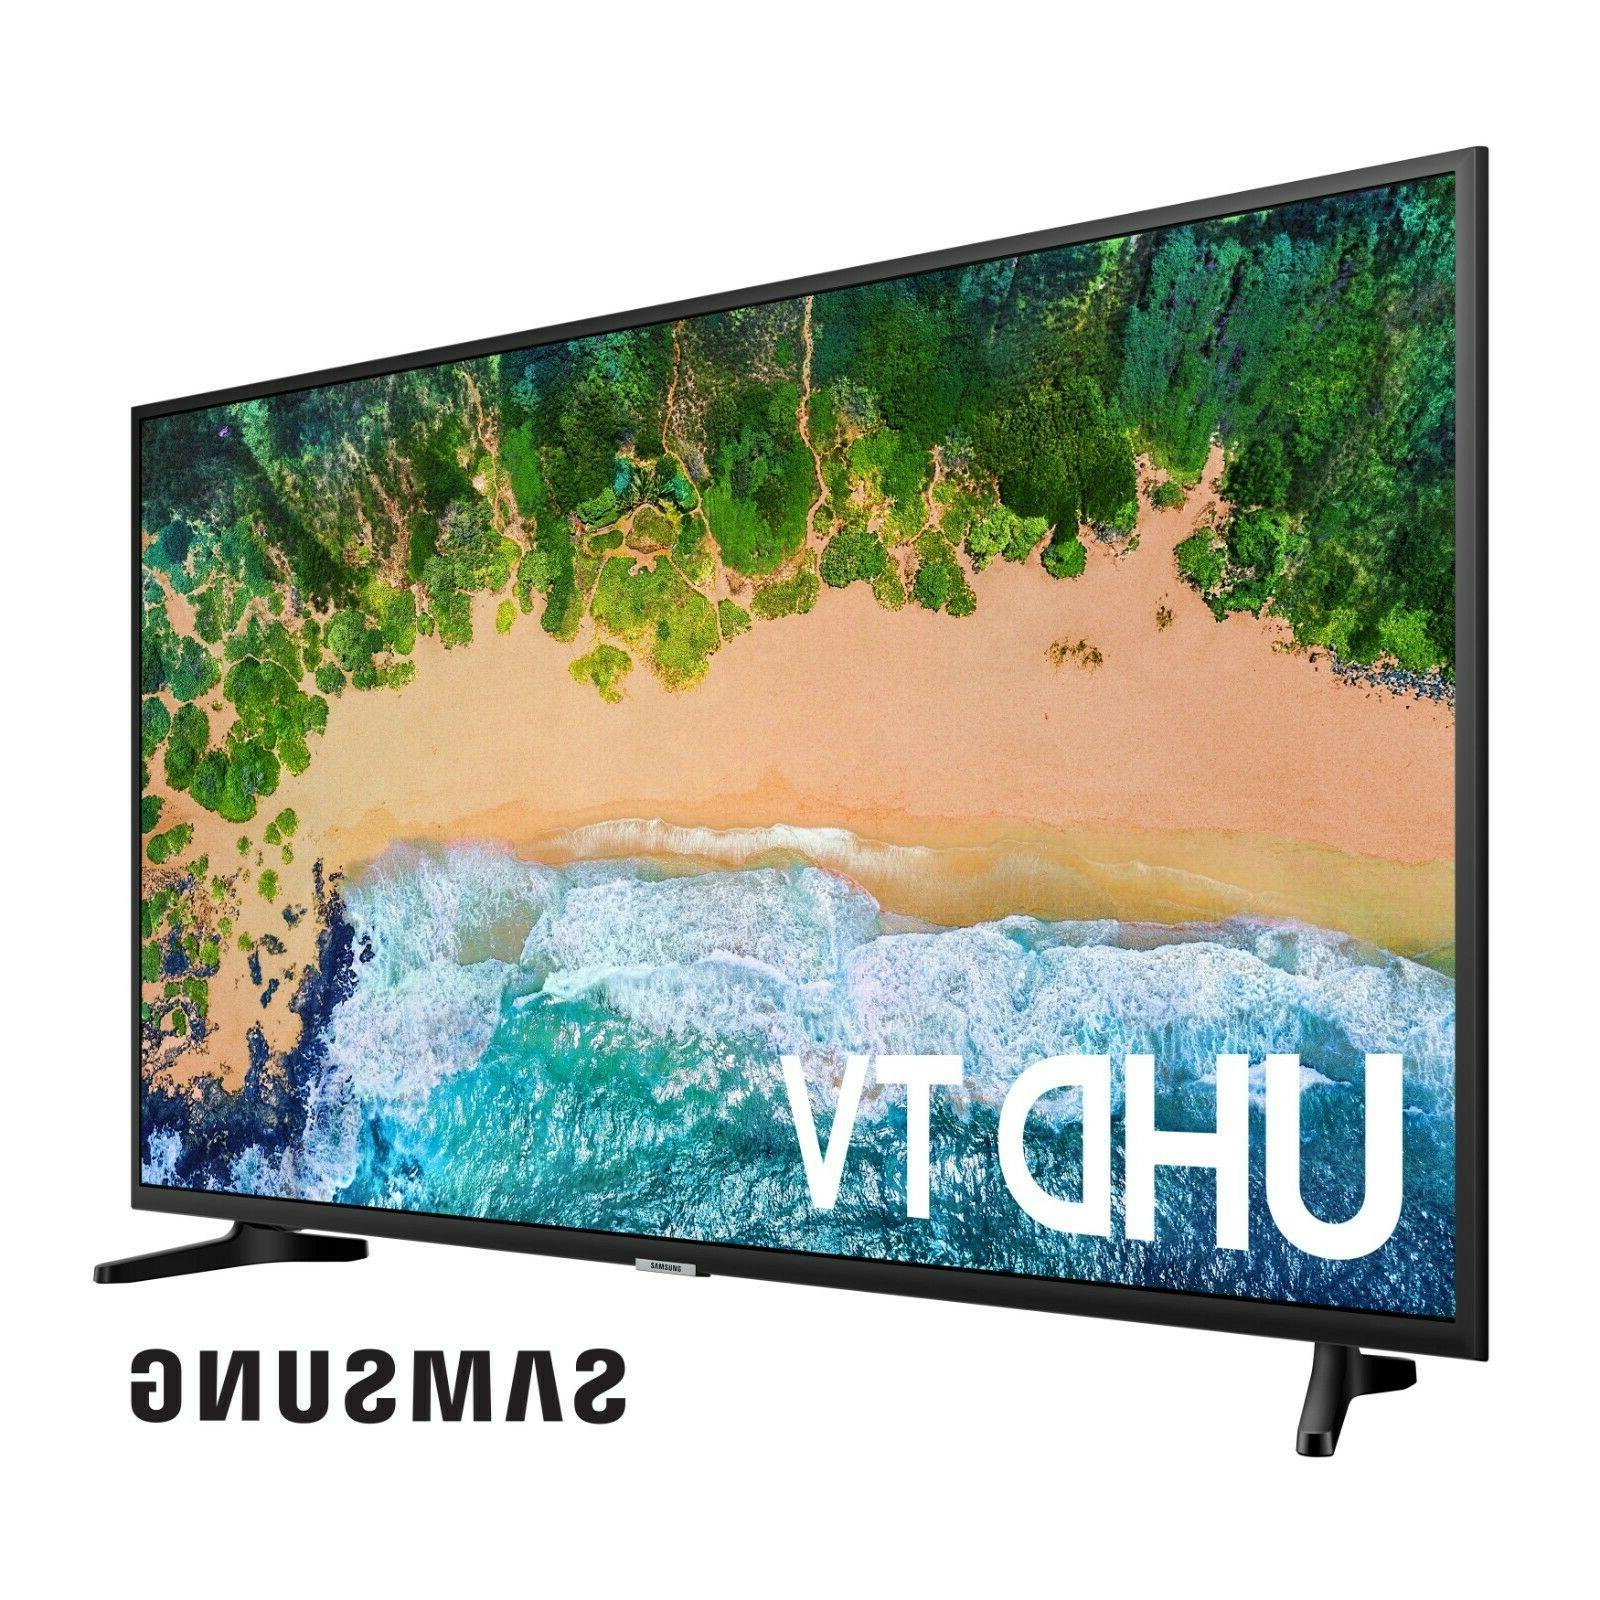 SAMSUNG Class UHD LED TV with HDR UN50NU6900